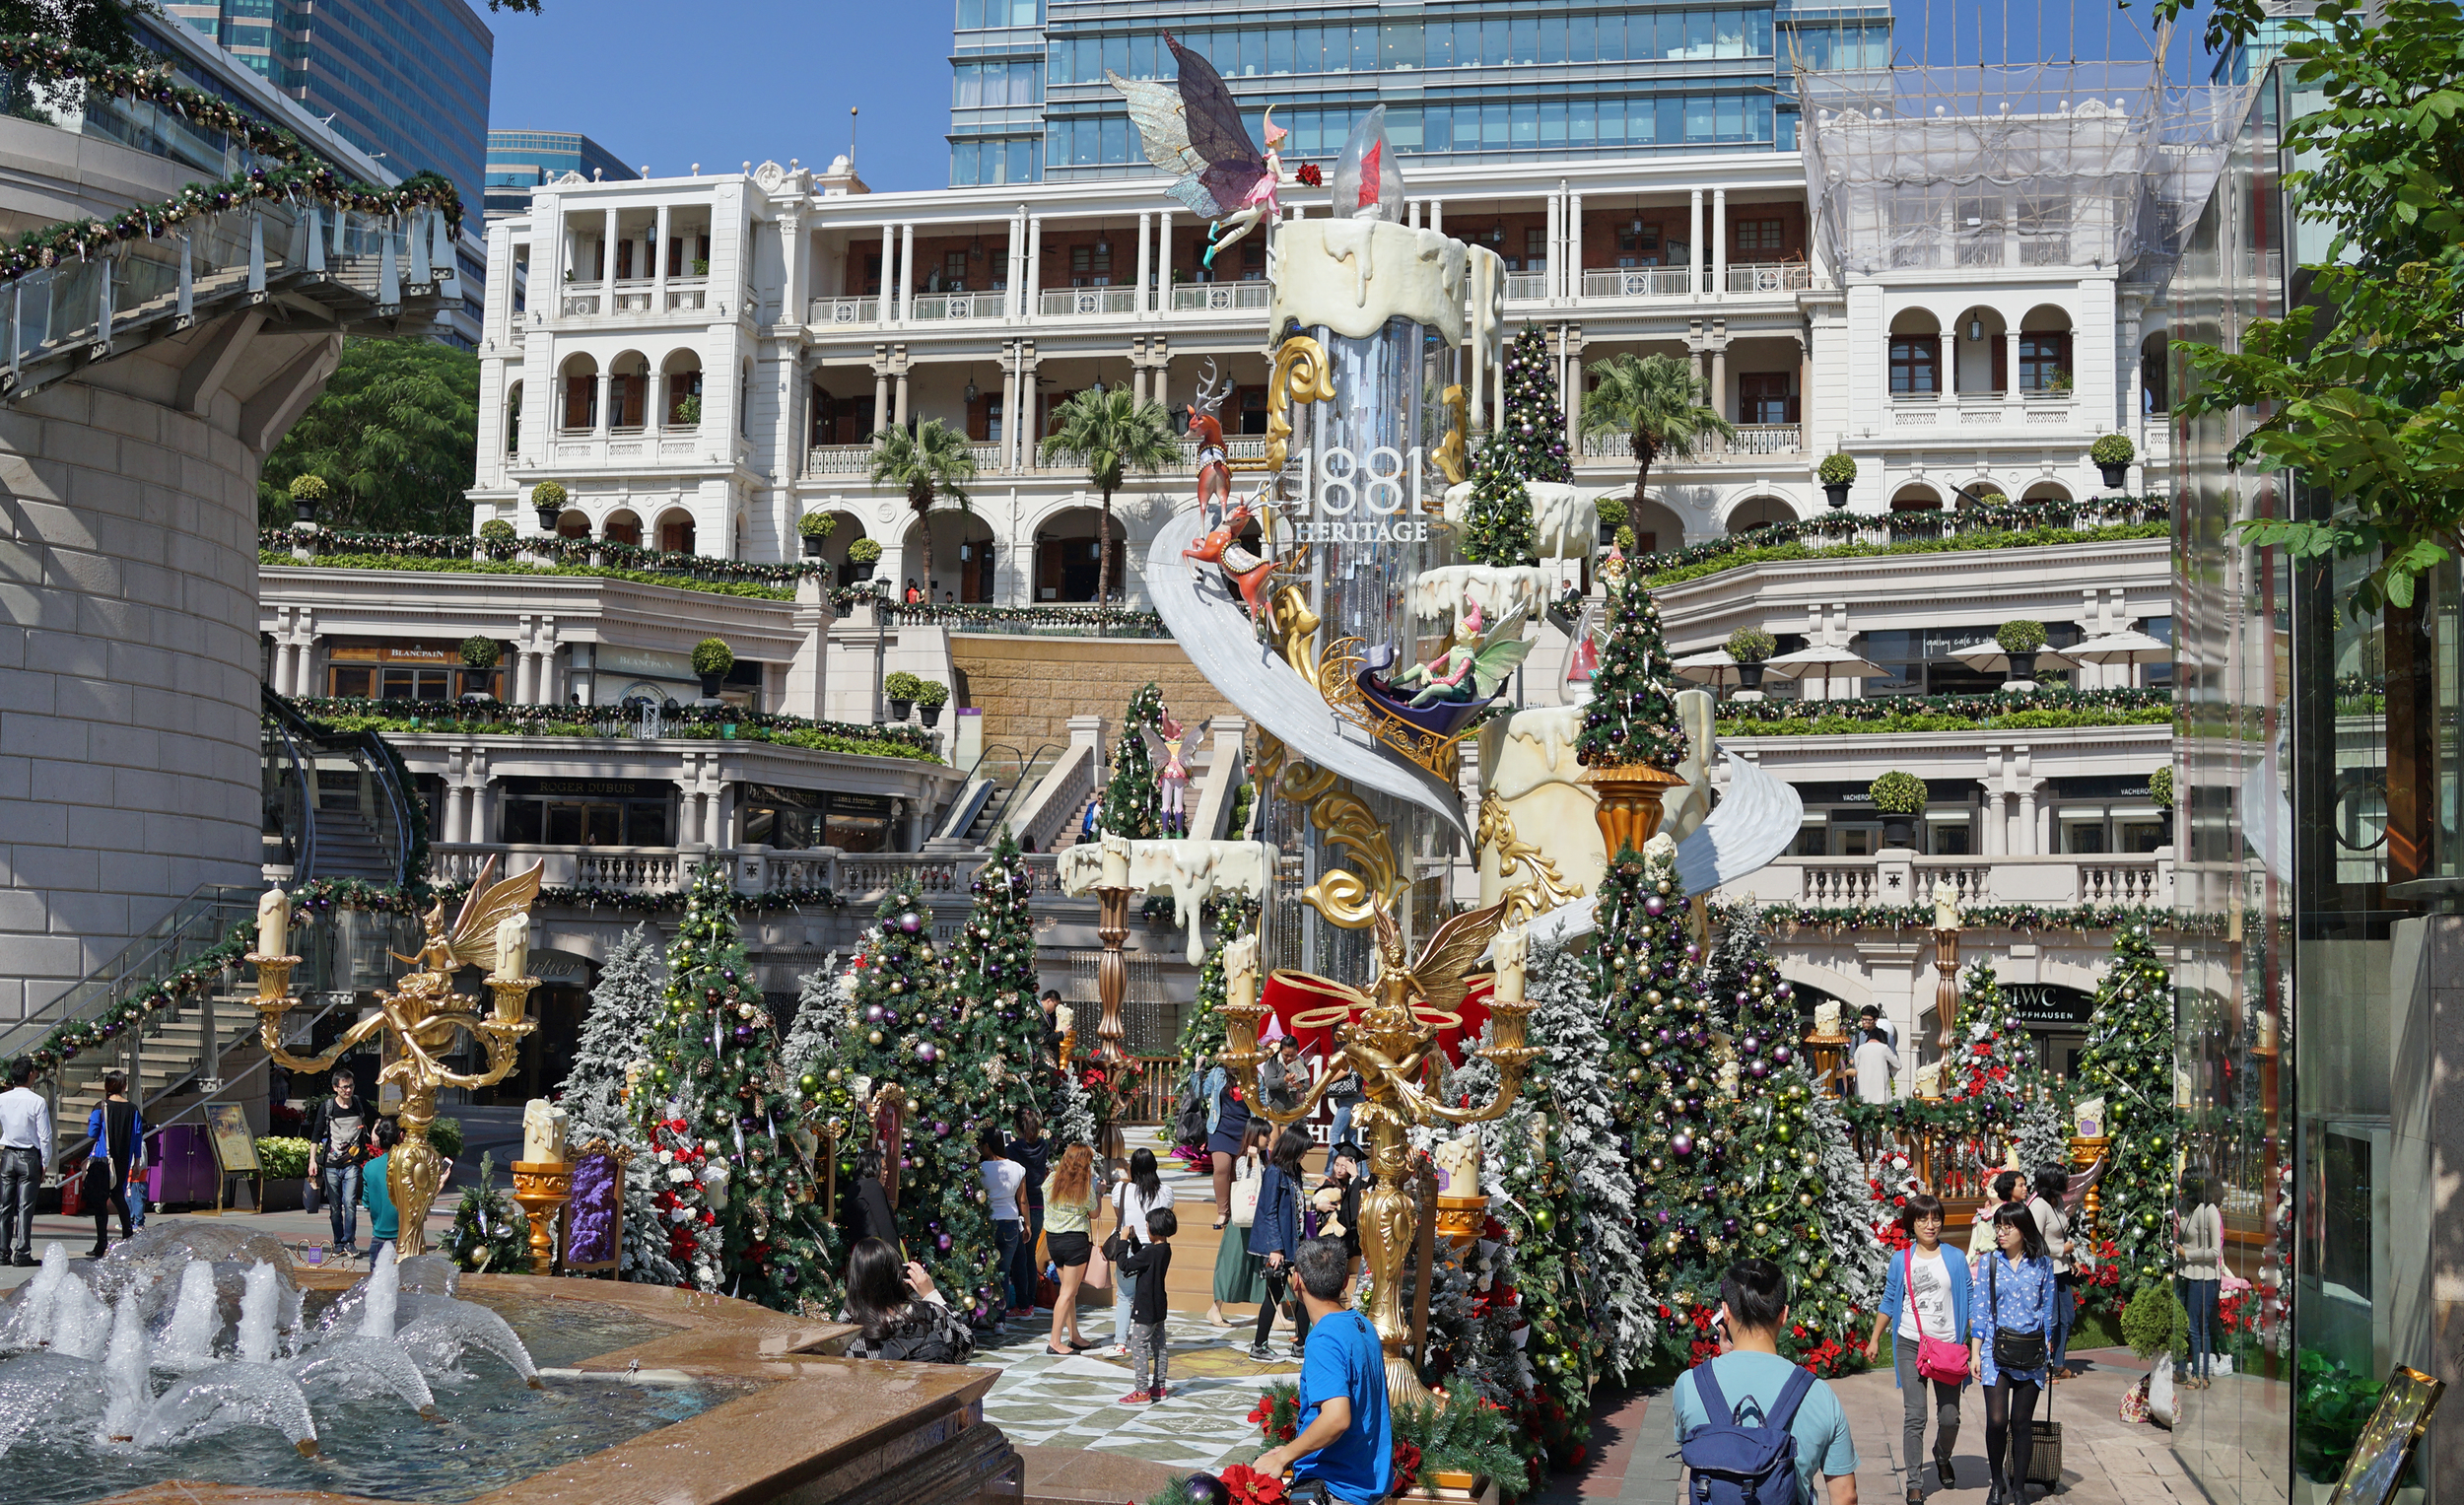 You can count on the 1881 Heritage Mall for over the top Christmas Decorations!